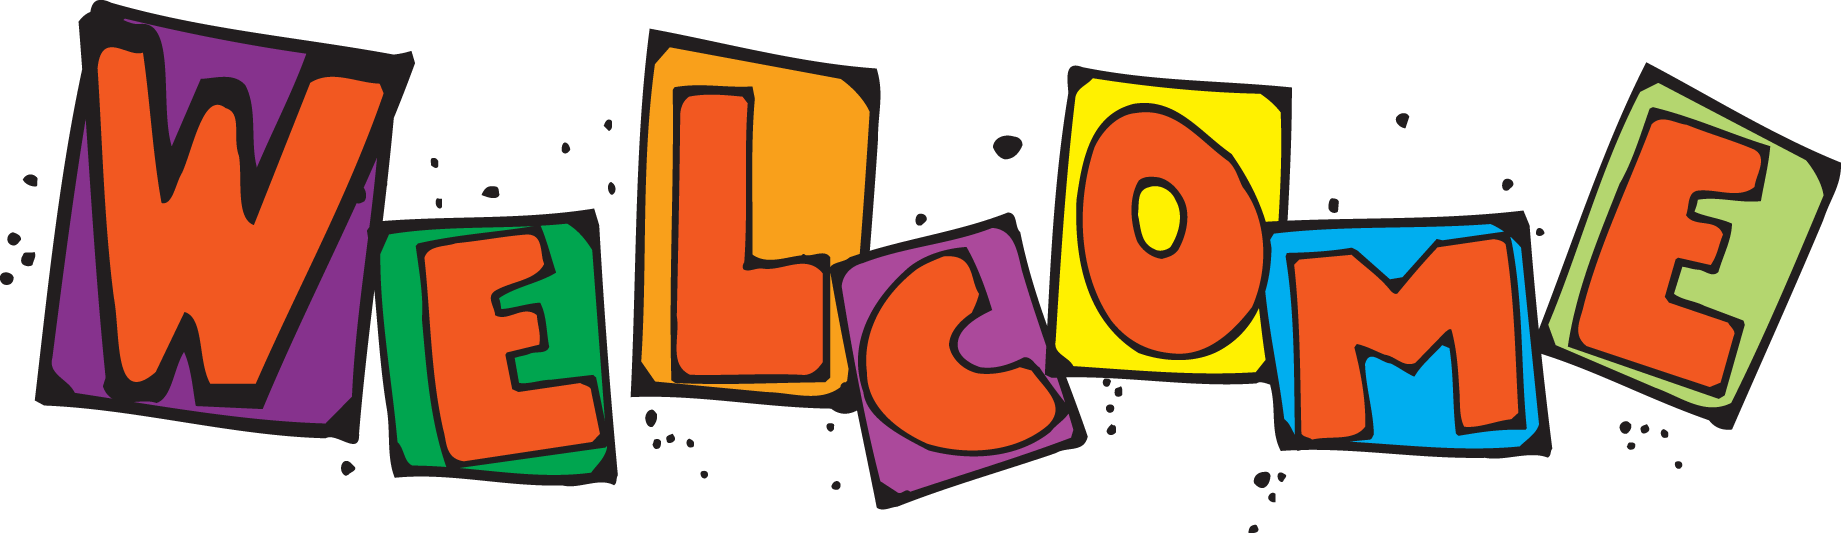 Welcome clipart free images.